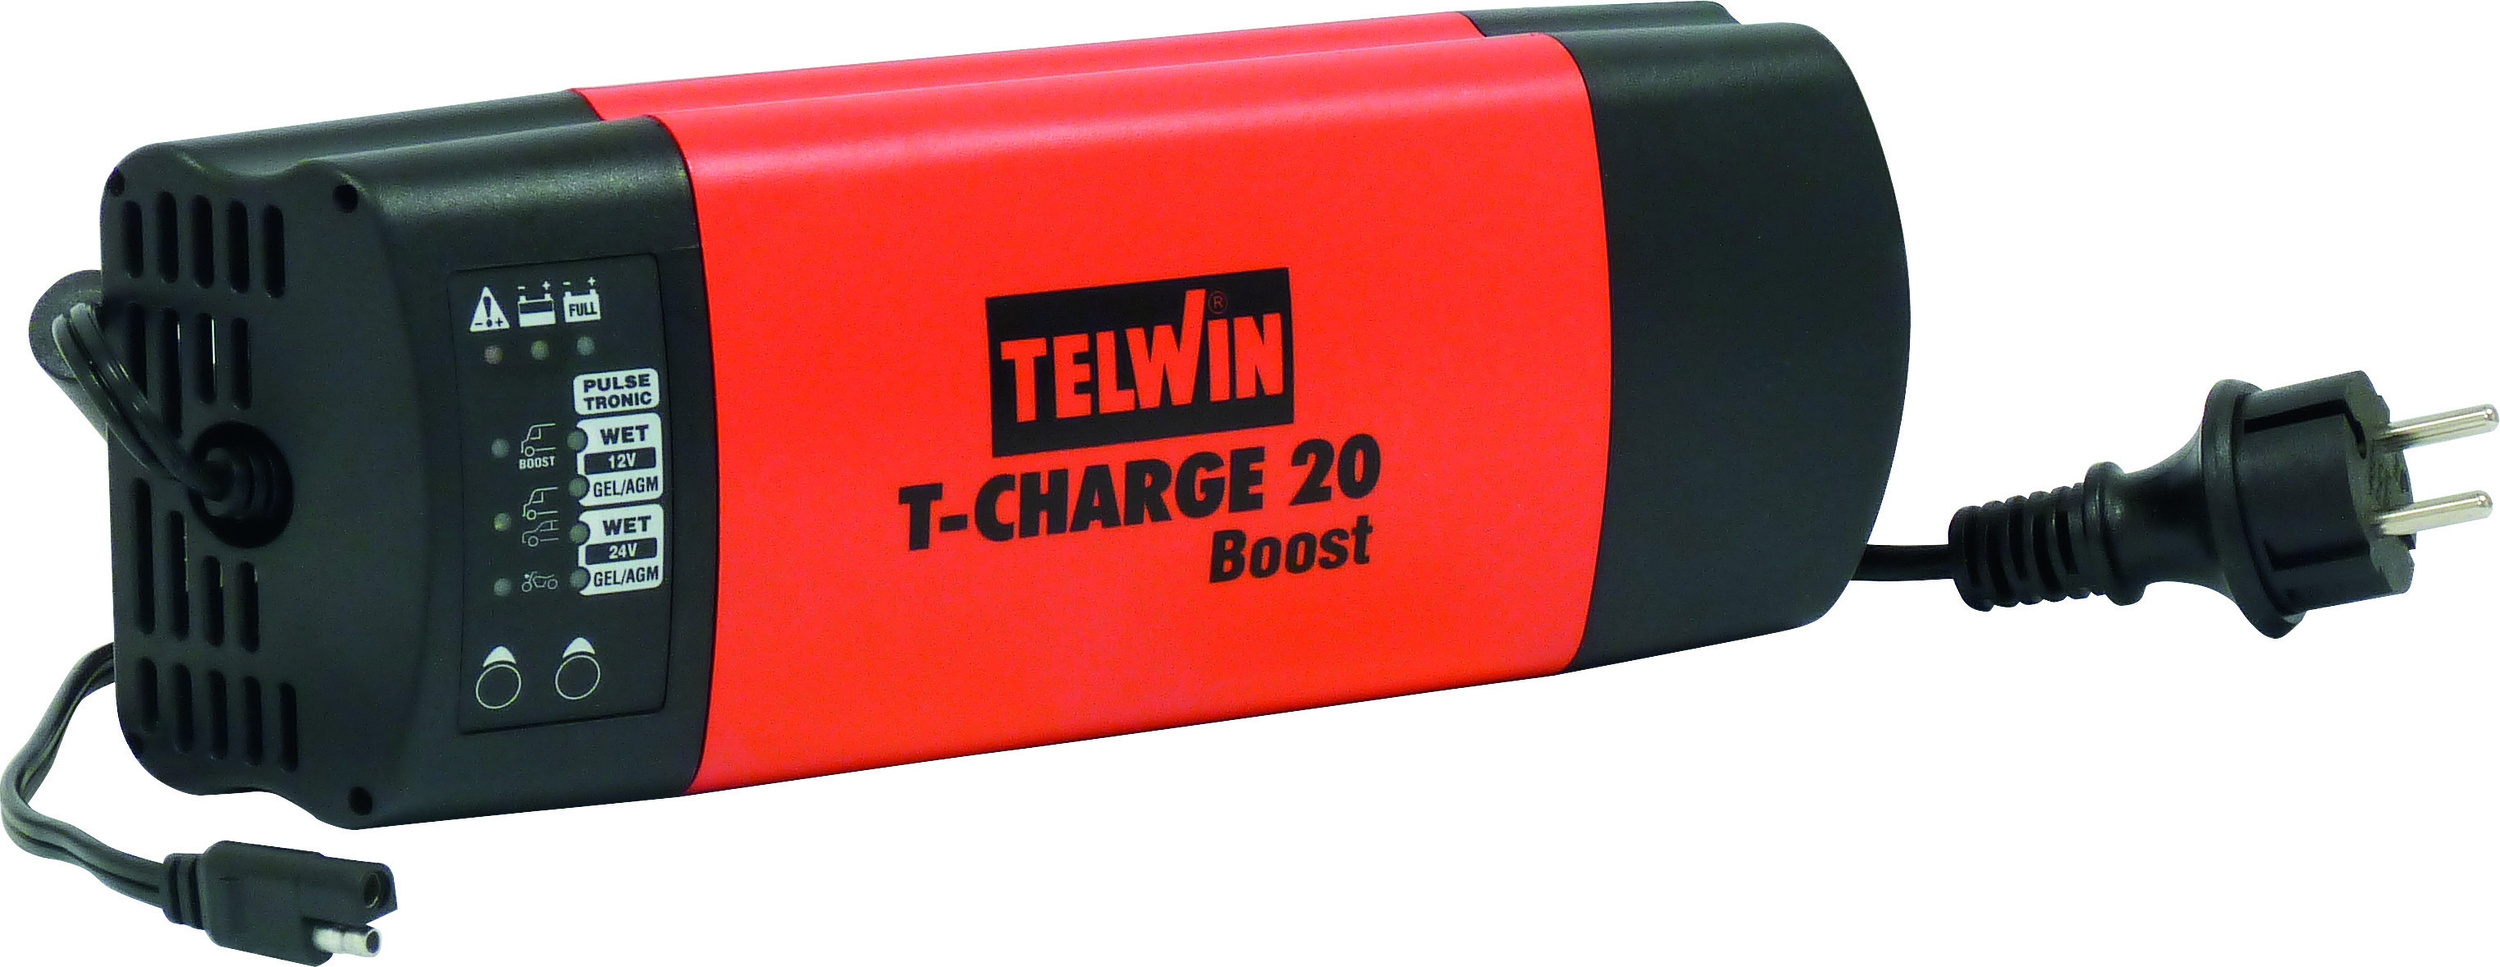 T-CHARGE 20 BOOST